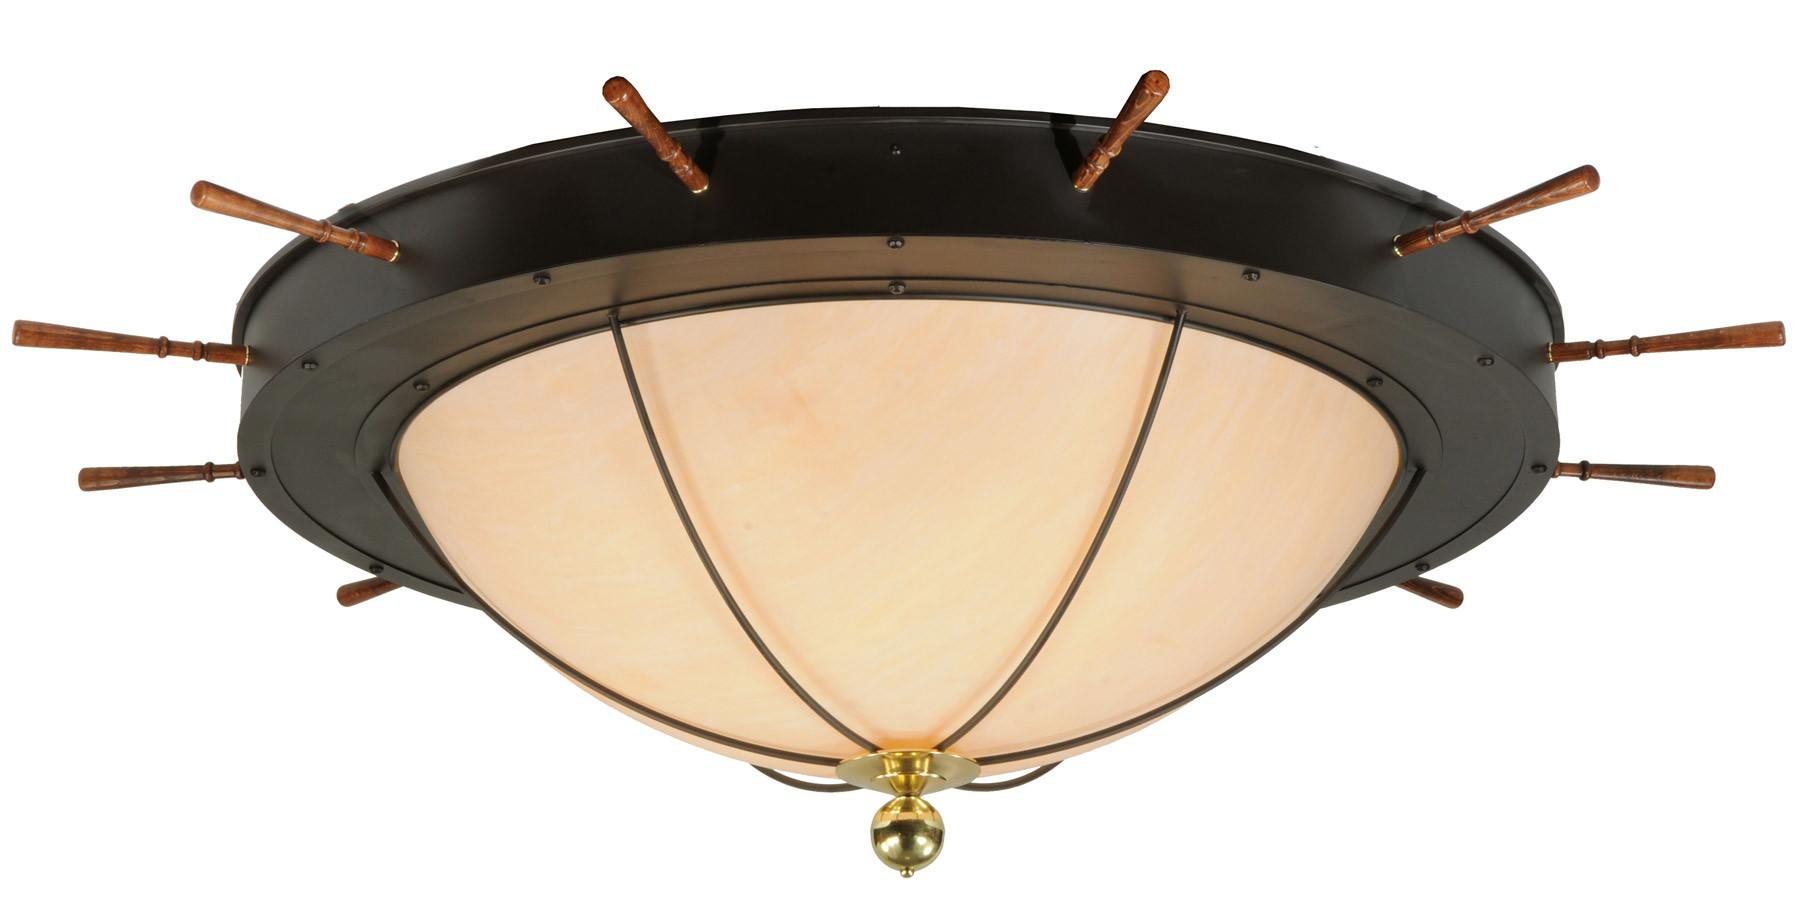 Meyda Nautical Flush Mount Ceiling Fixture